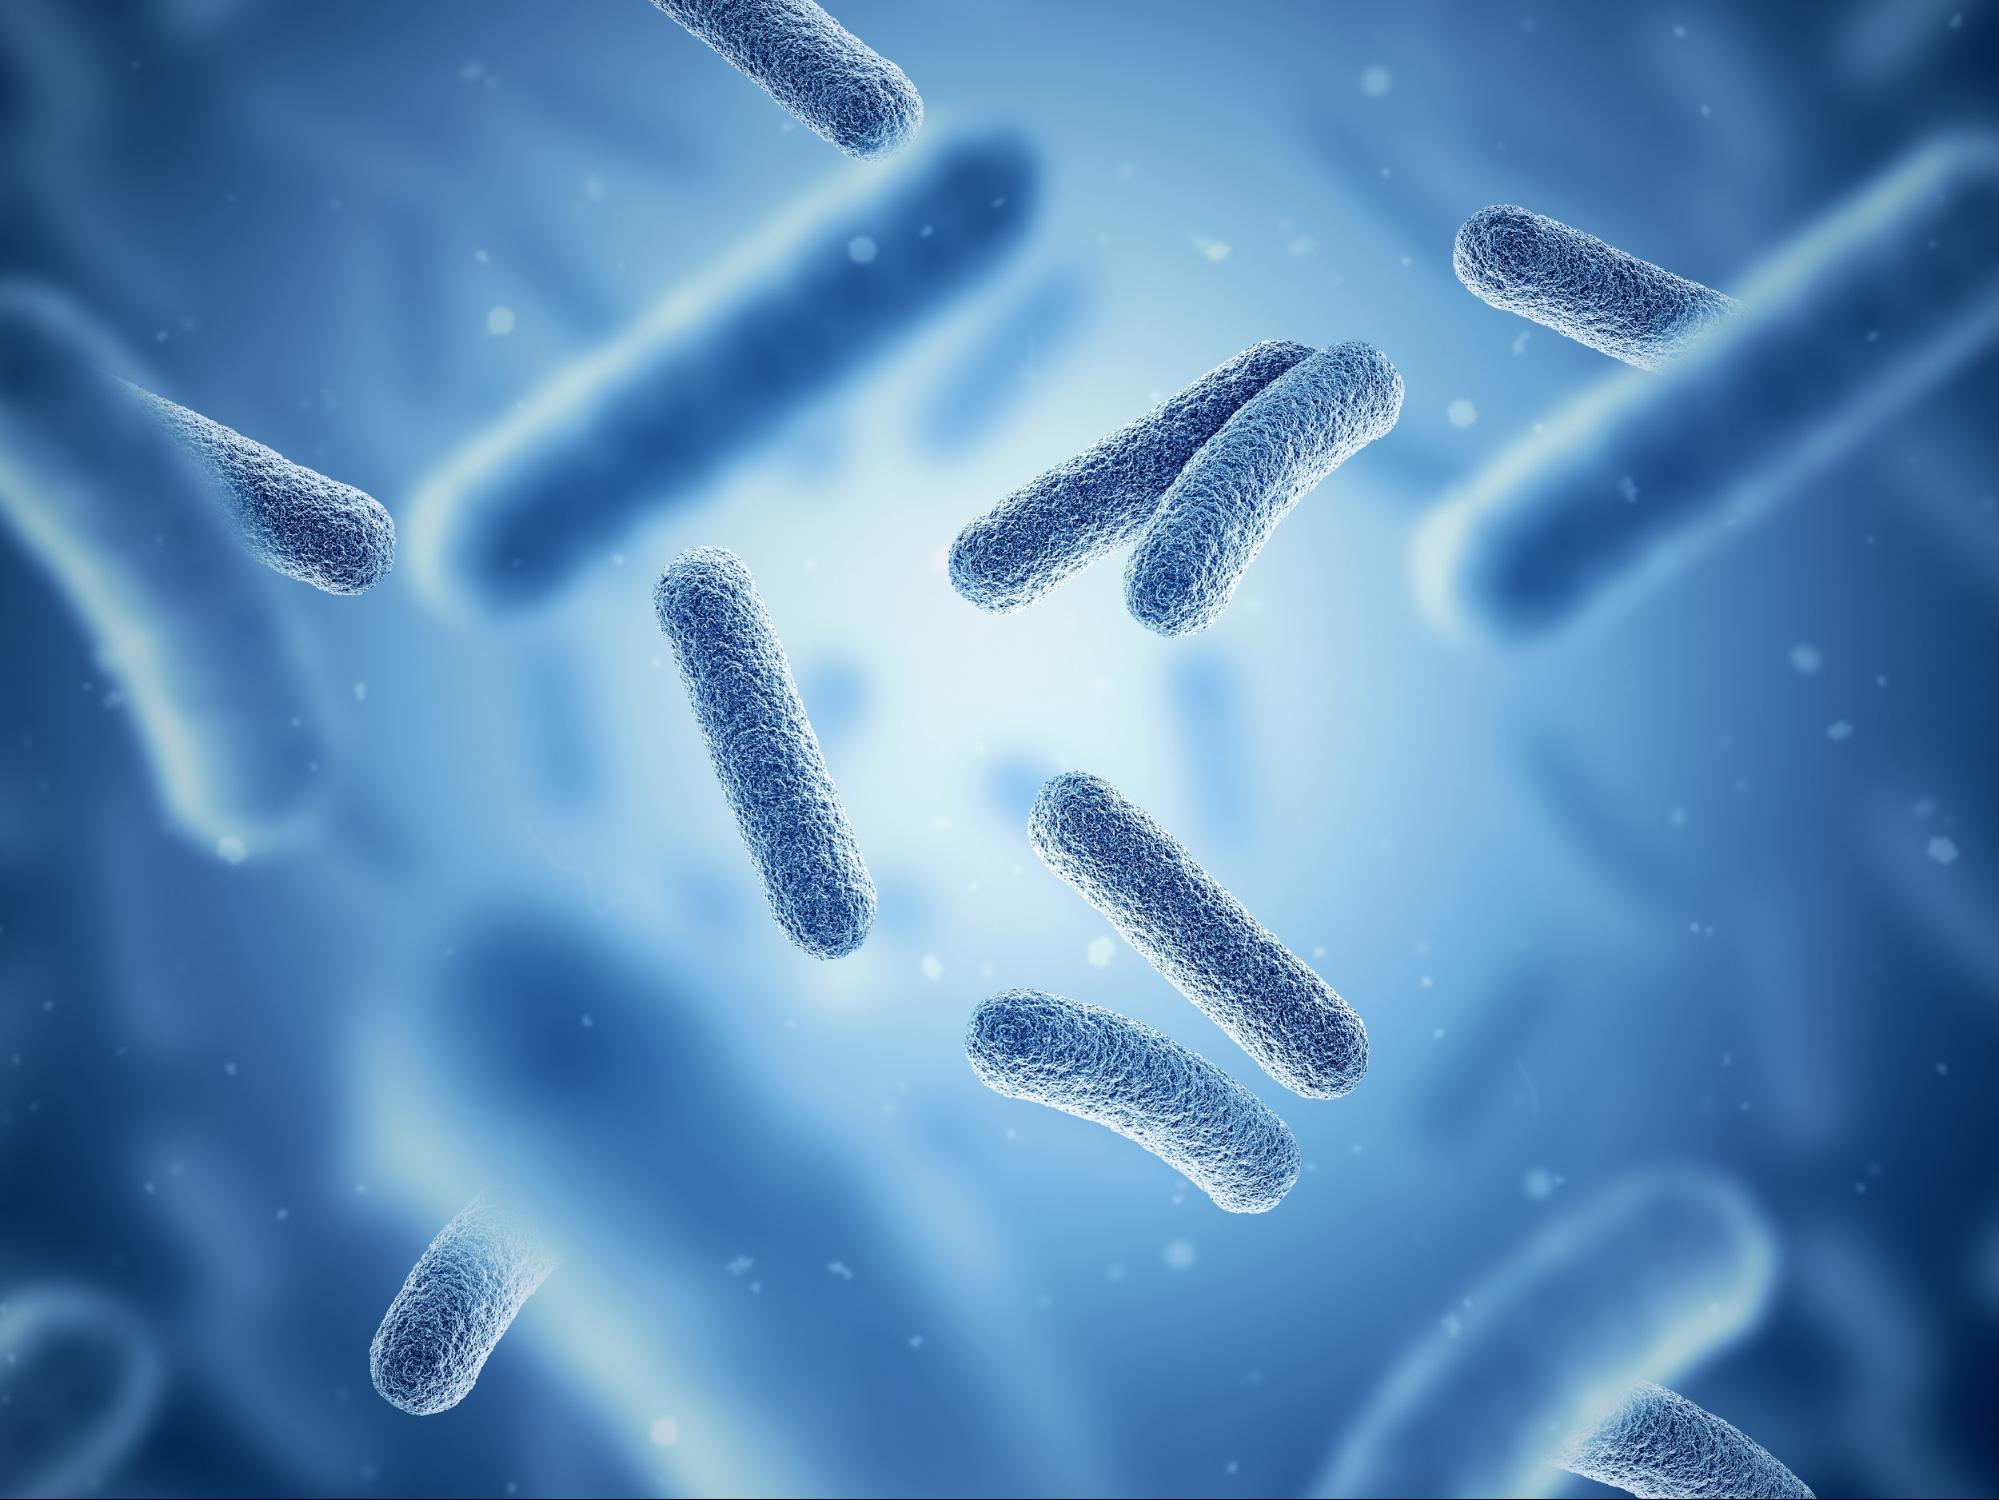 adrenal fatigue symptoms: Photo of bacteria with a blue background